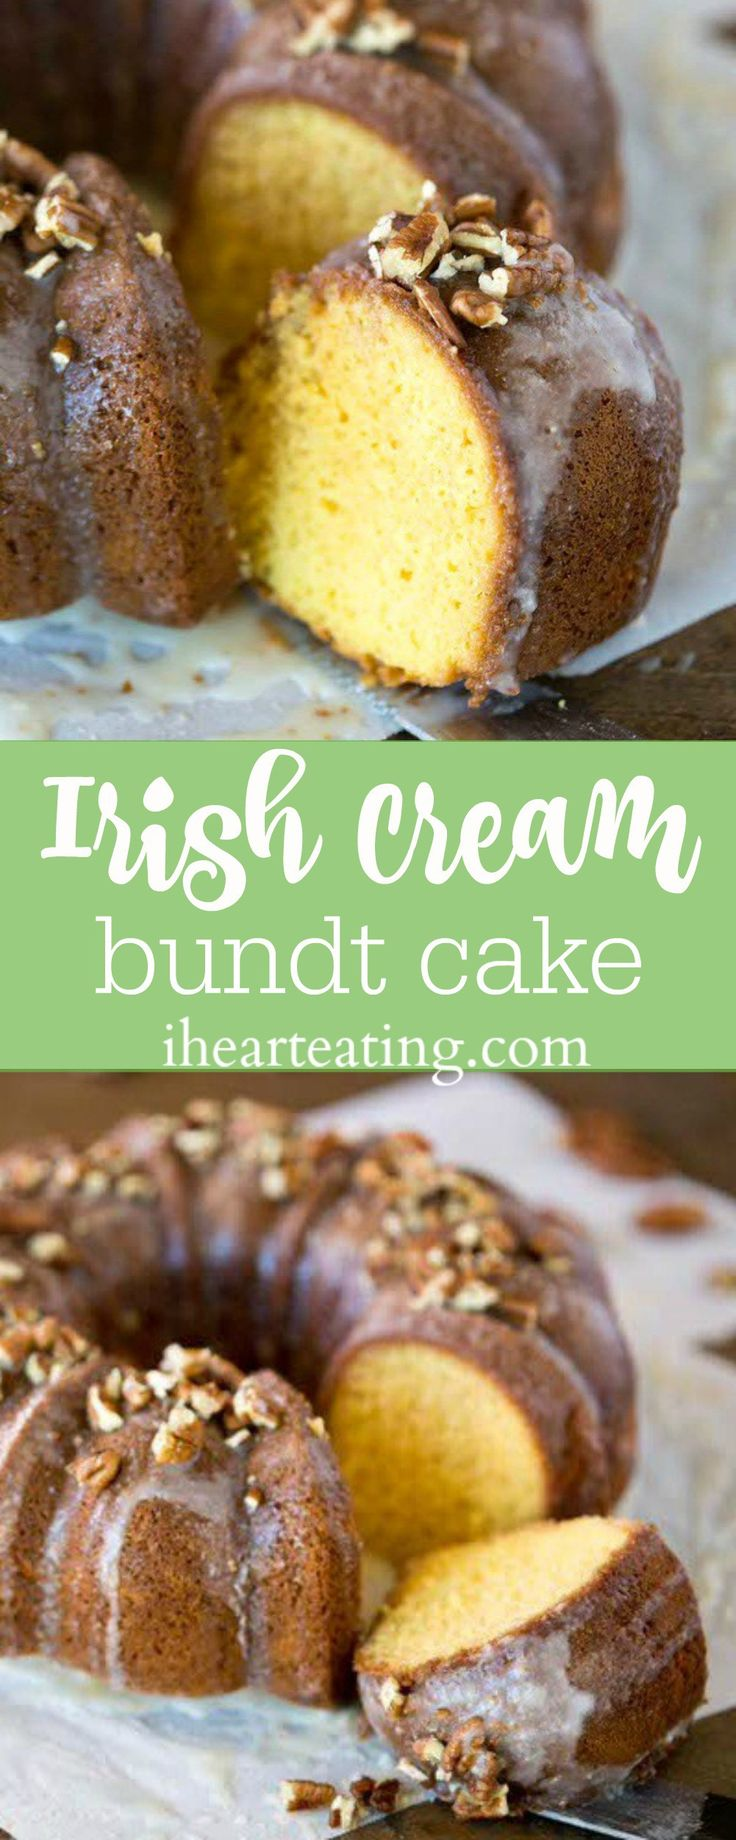 Irish Cream Bundt Cake Recipe - easy St. Patrick's Day dessert!